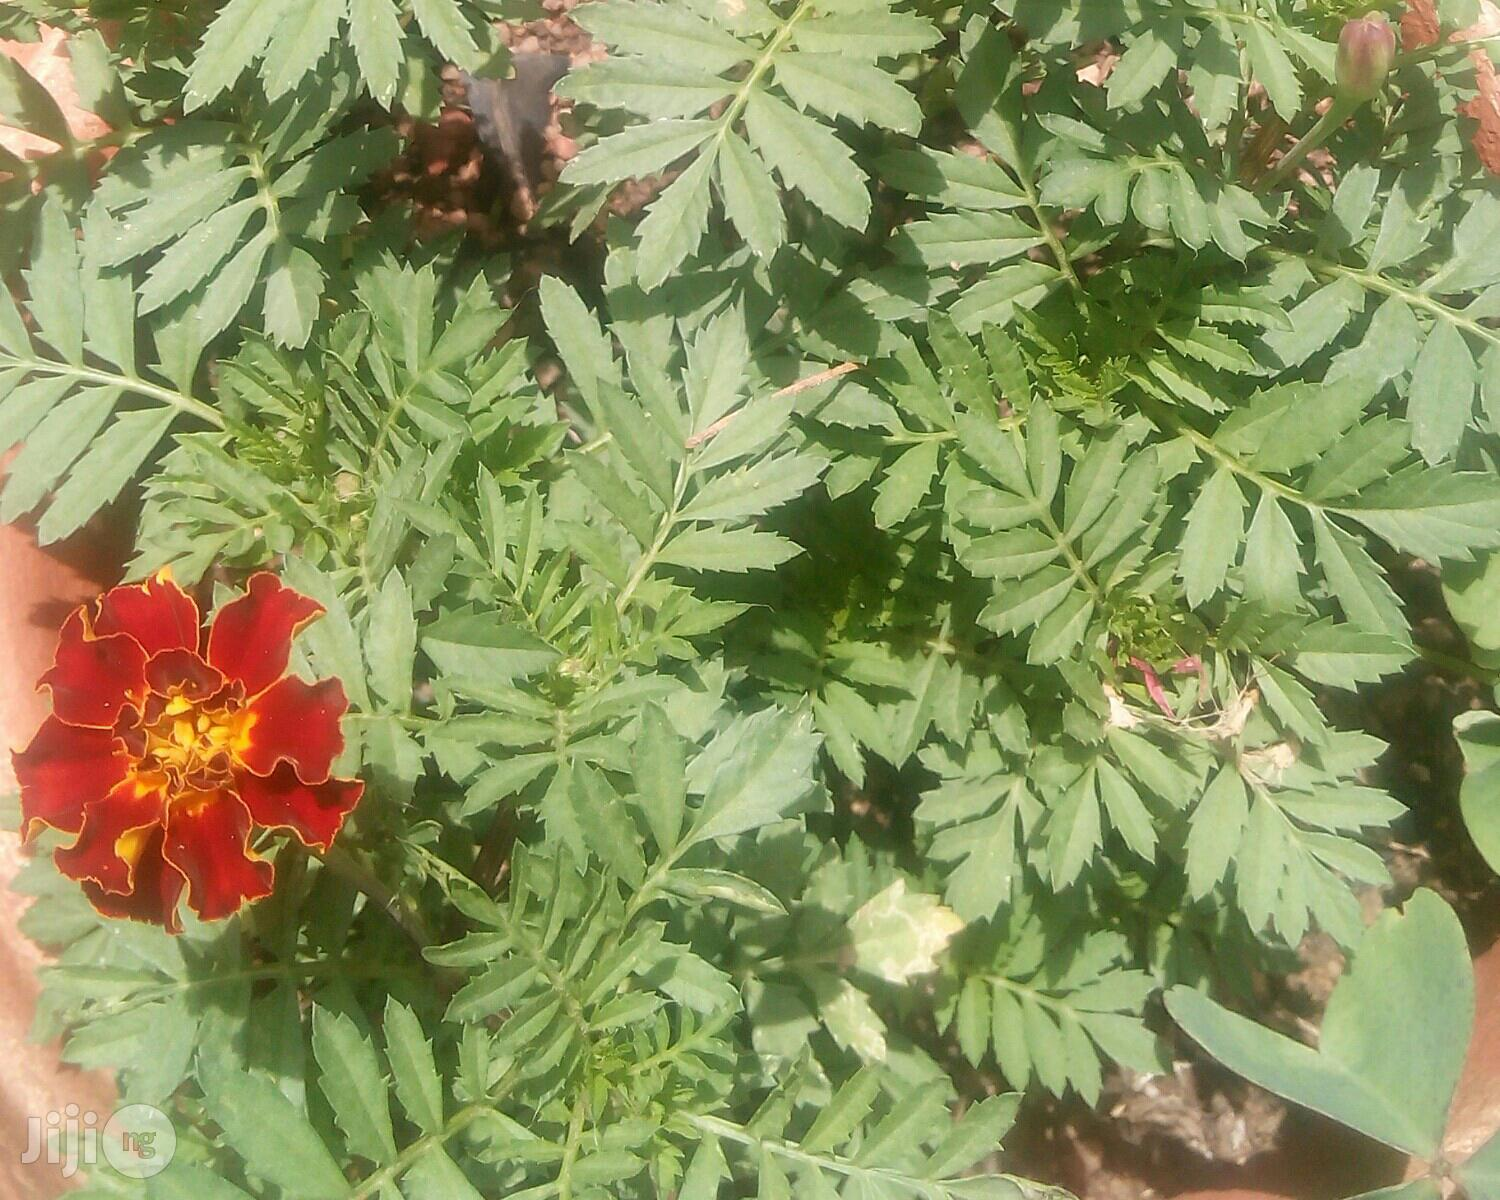 Seedlings Plants Seedlings Wholesale 10000 Pieces And Above | Garden for sale in Jos, Plateau State, Nigeria